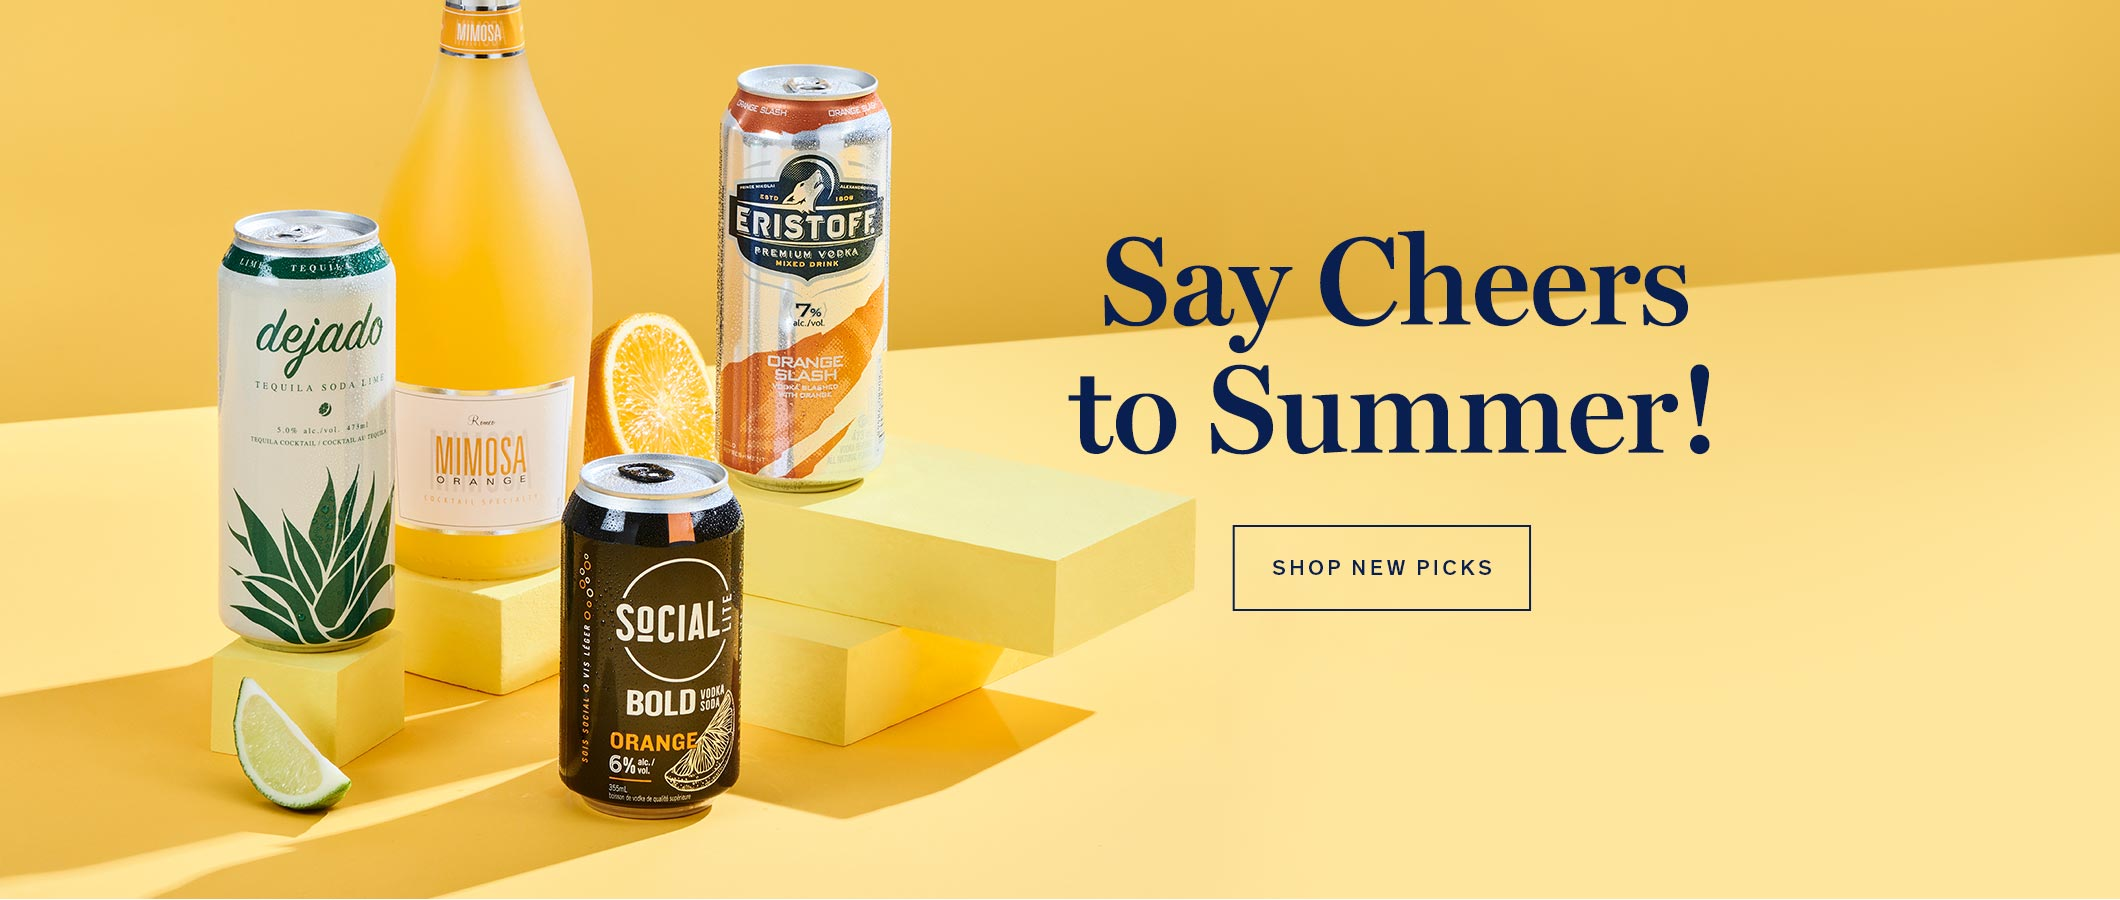 Say Cheers to Summer! SHOP NEW PICKS